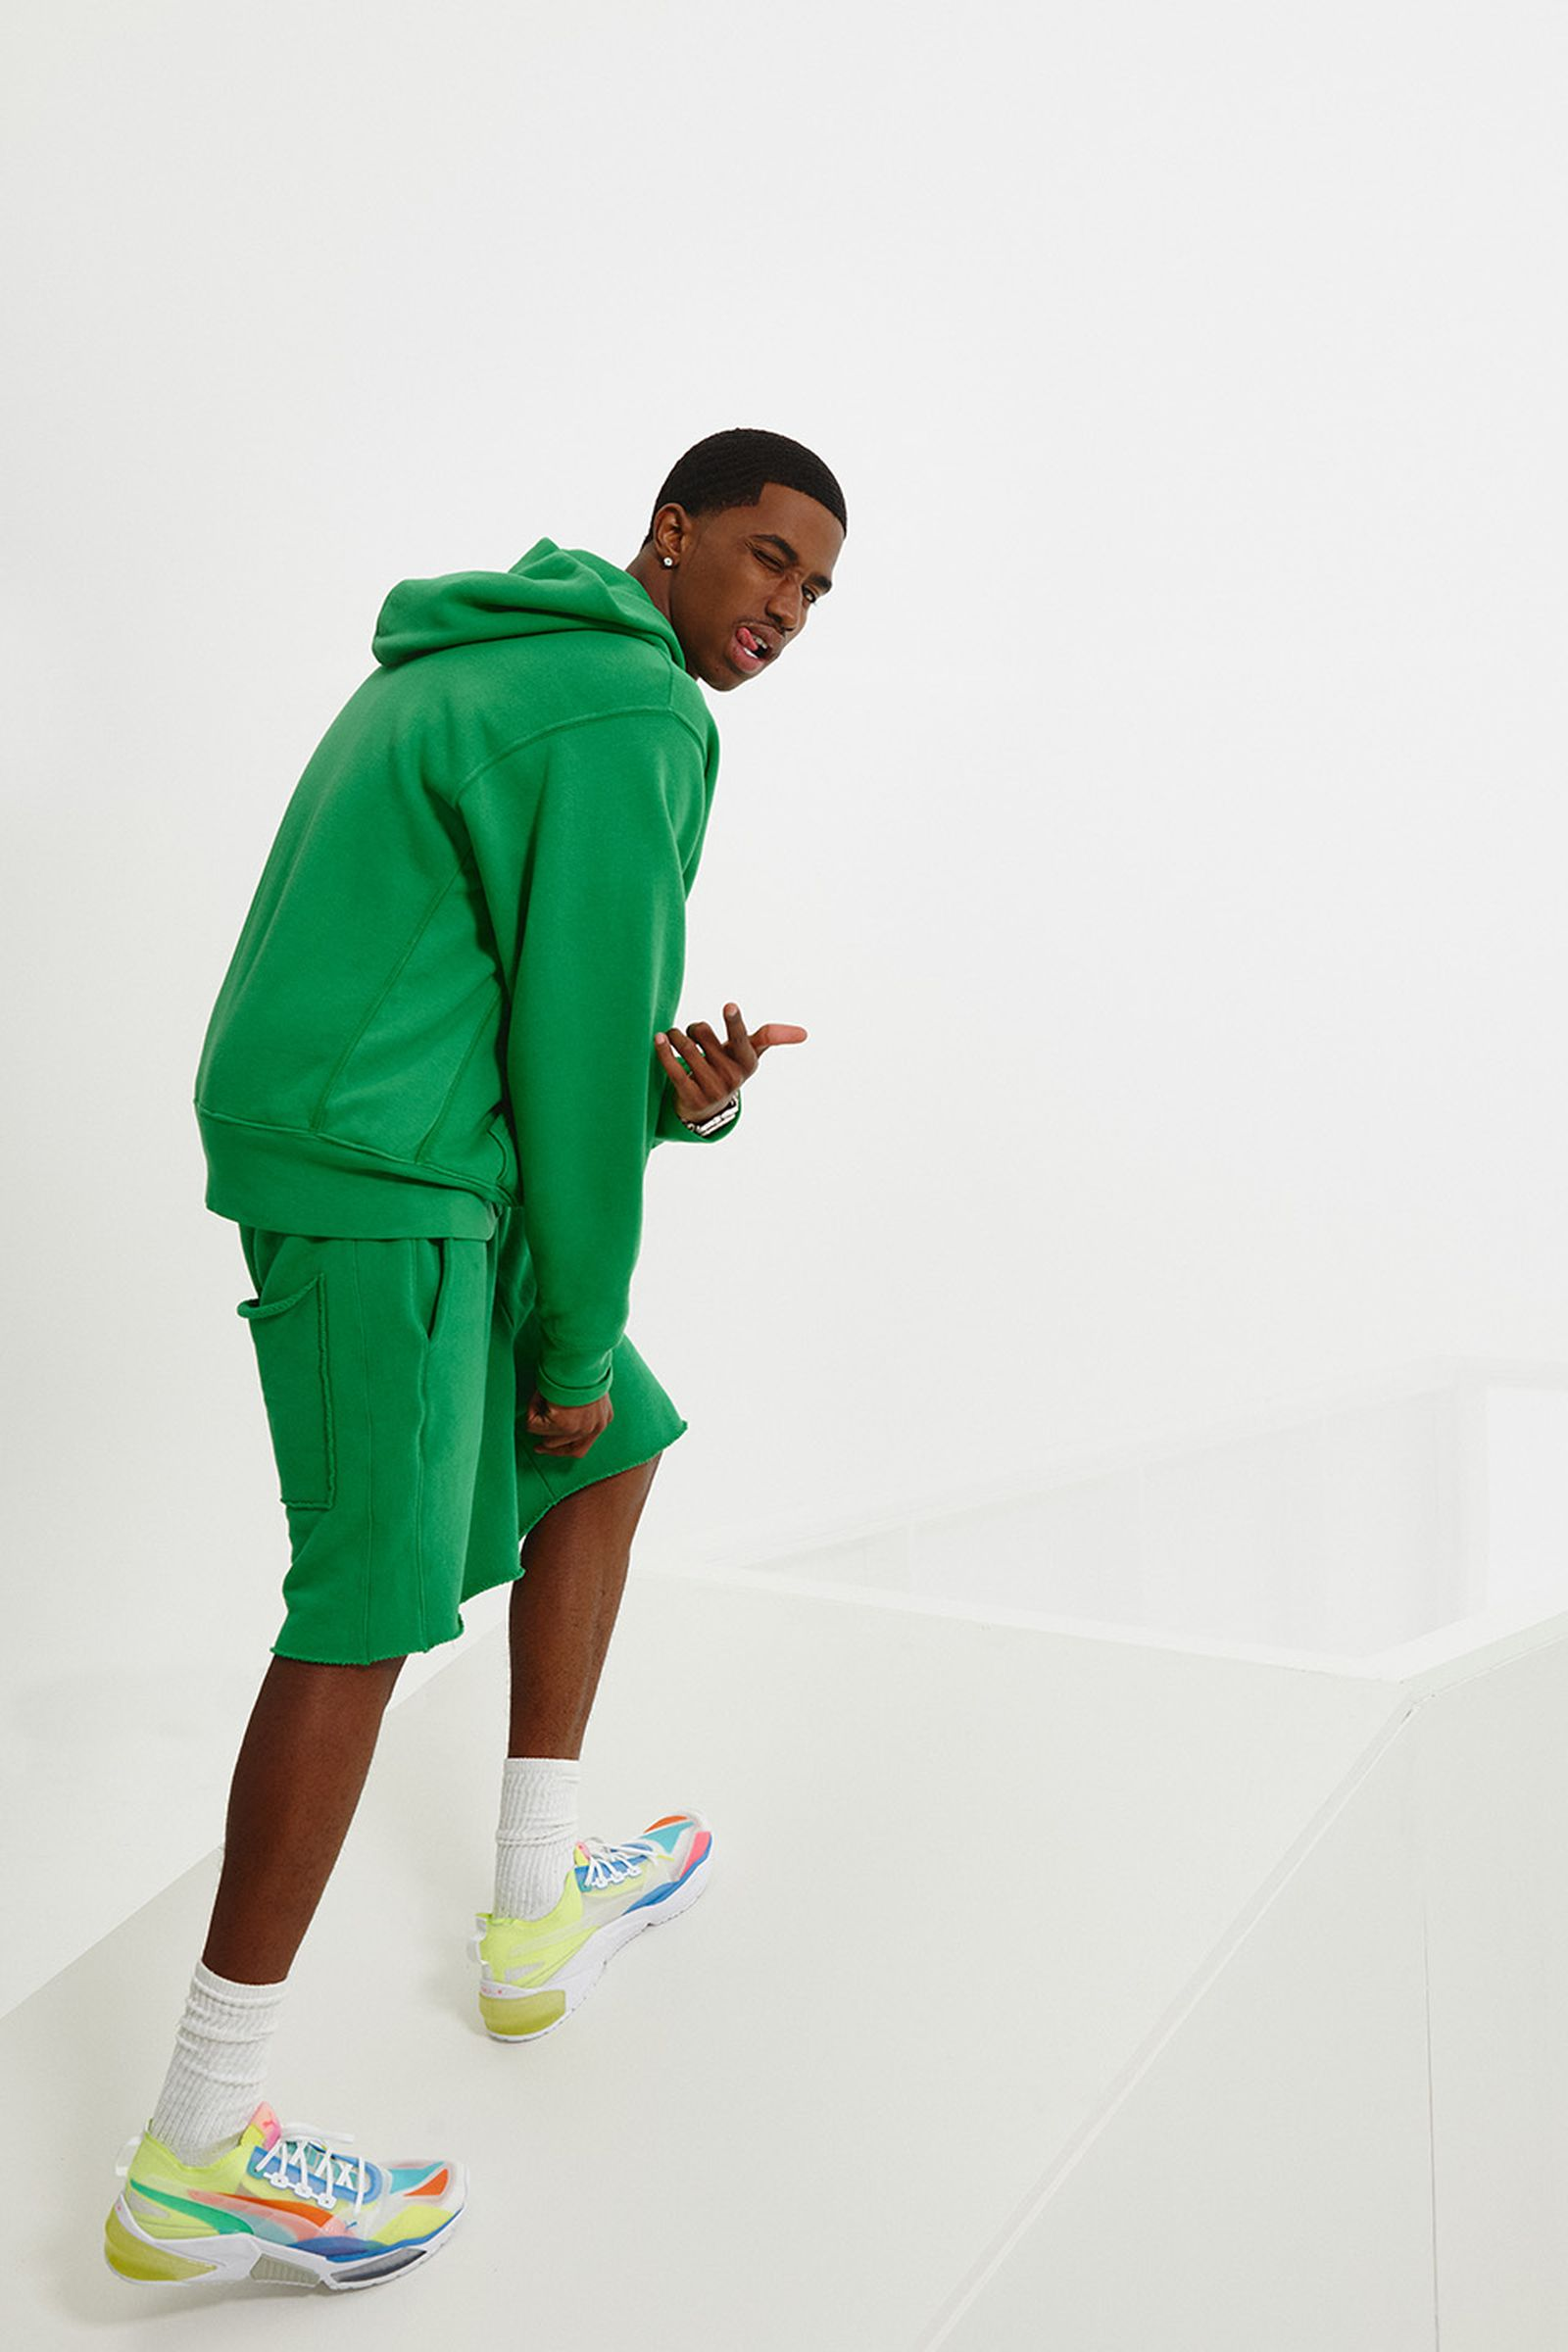 puma-lqd-cell-optic-christian-combs-07